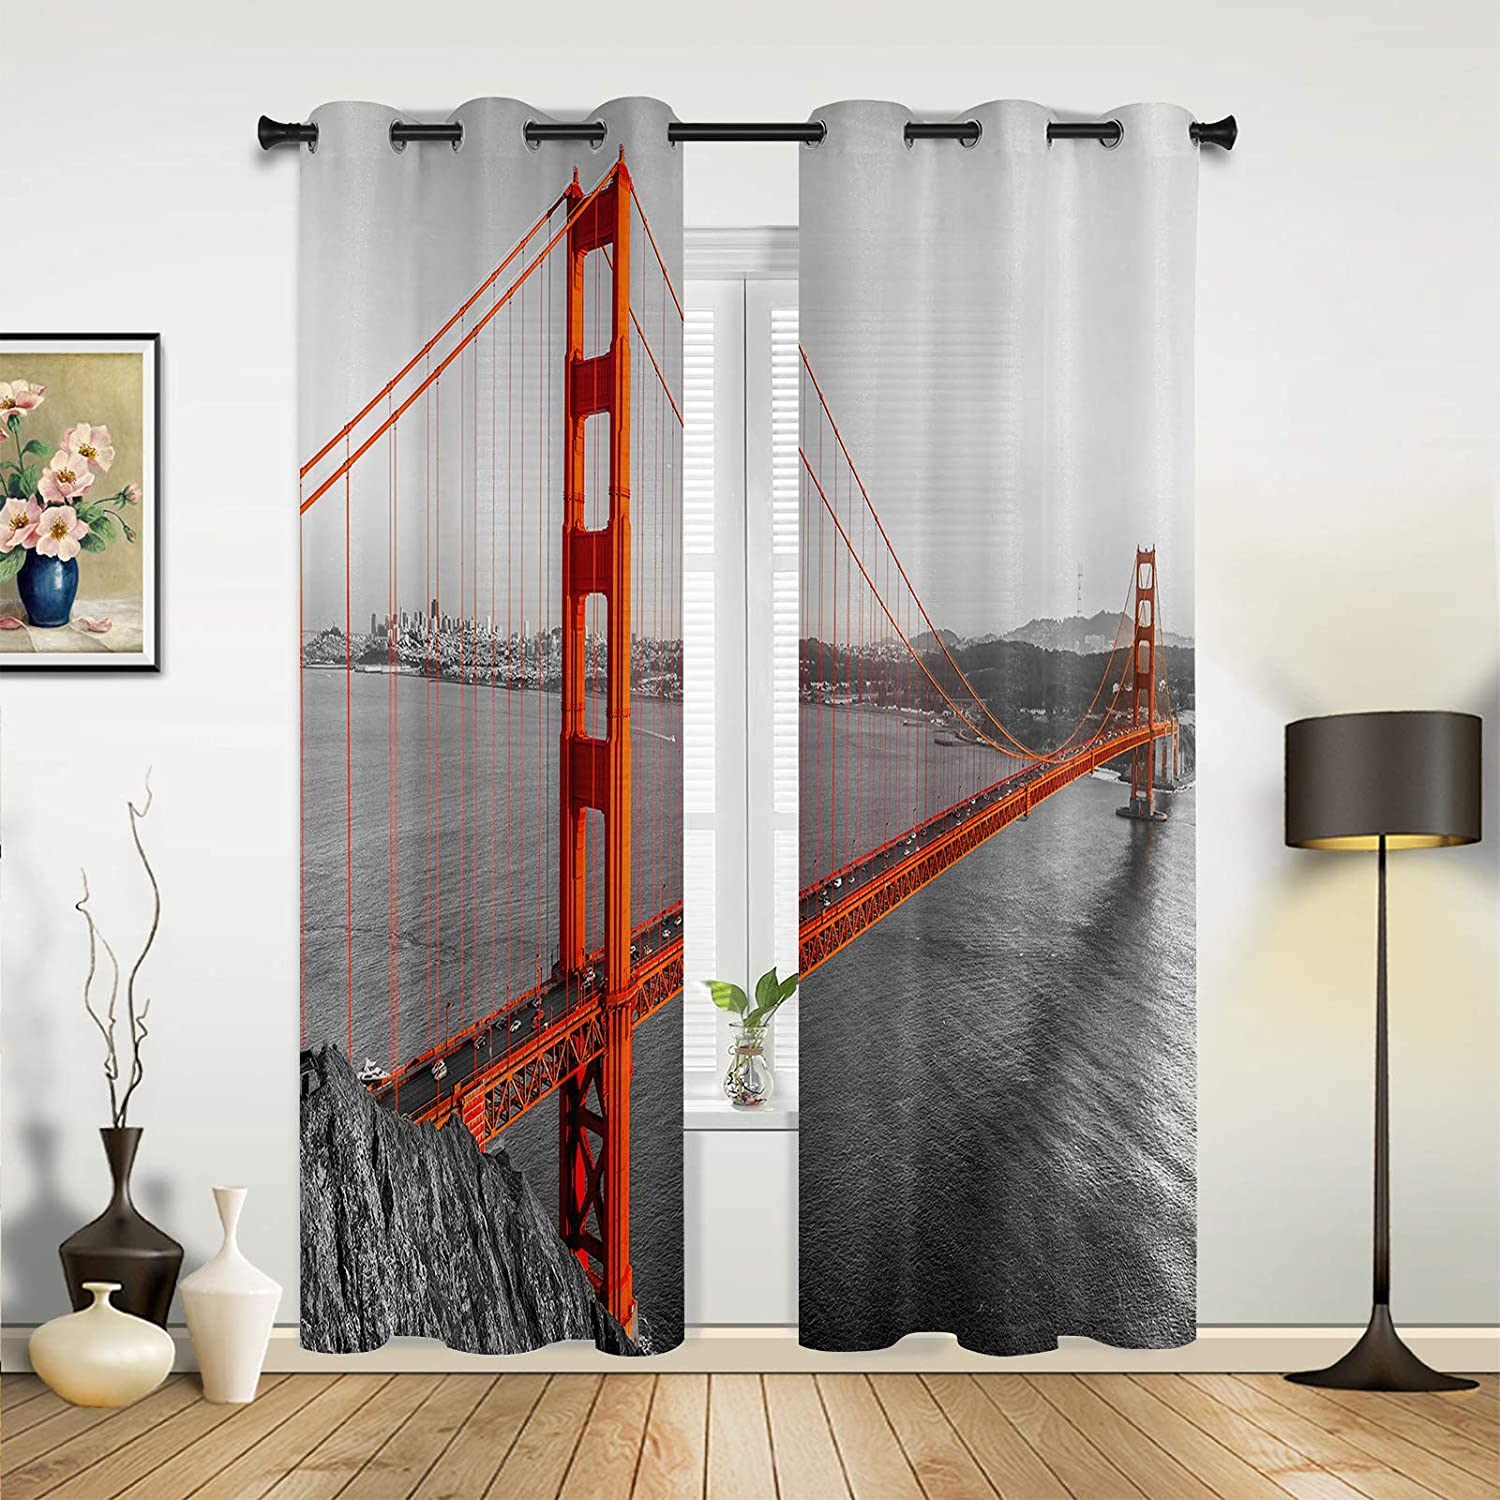 Beauty gift Decor Window Sheer Curtains for Bedroom San F Room Living High order